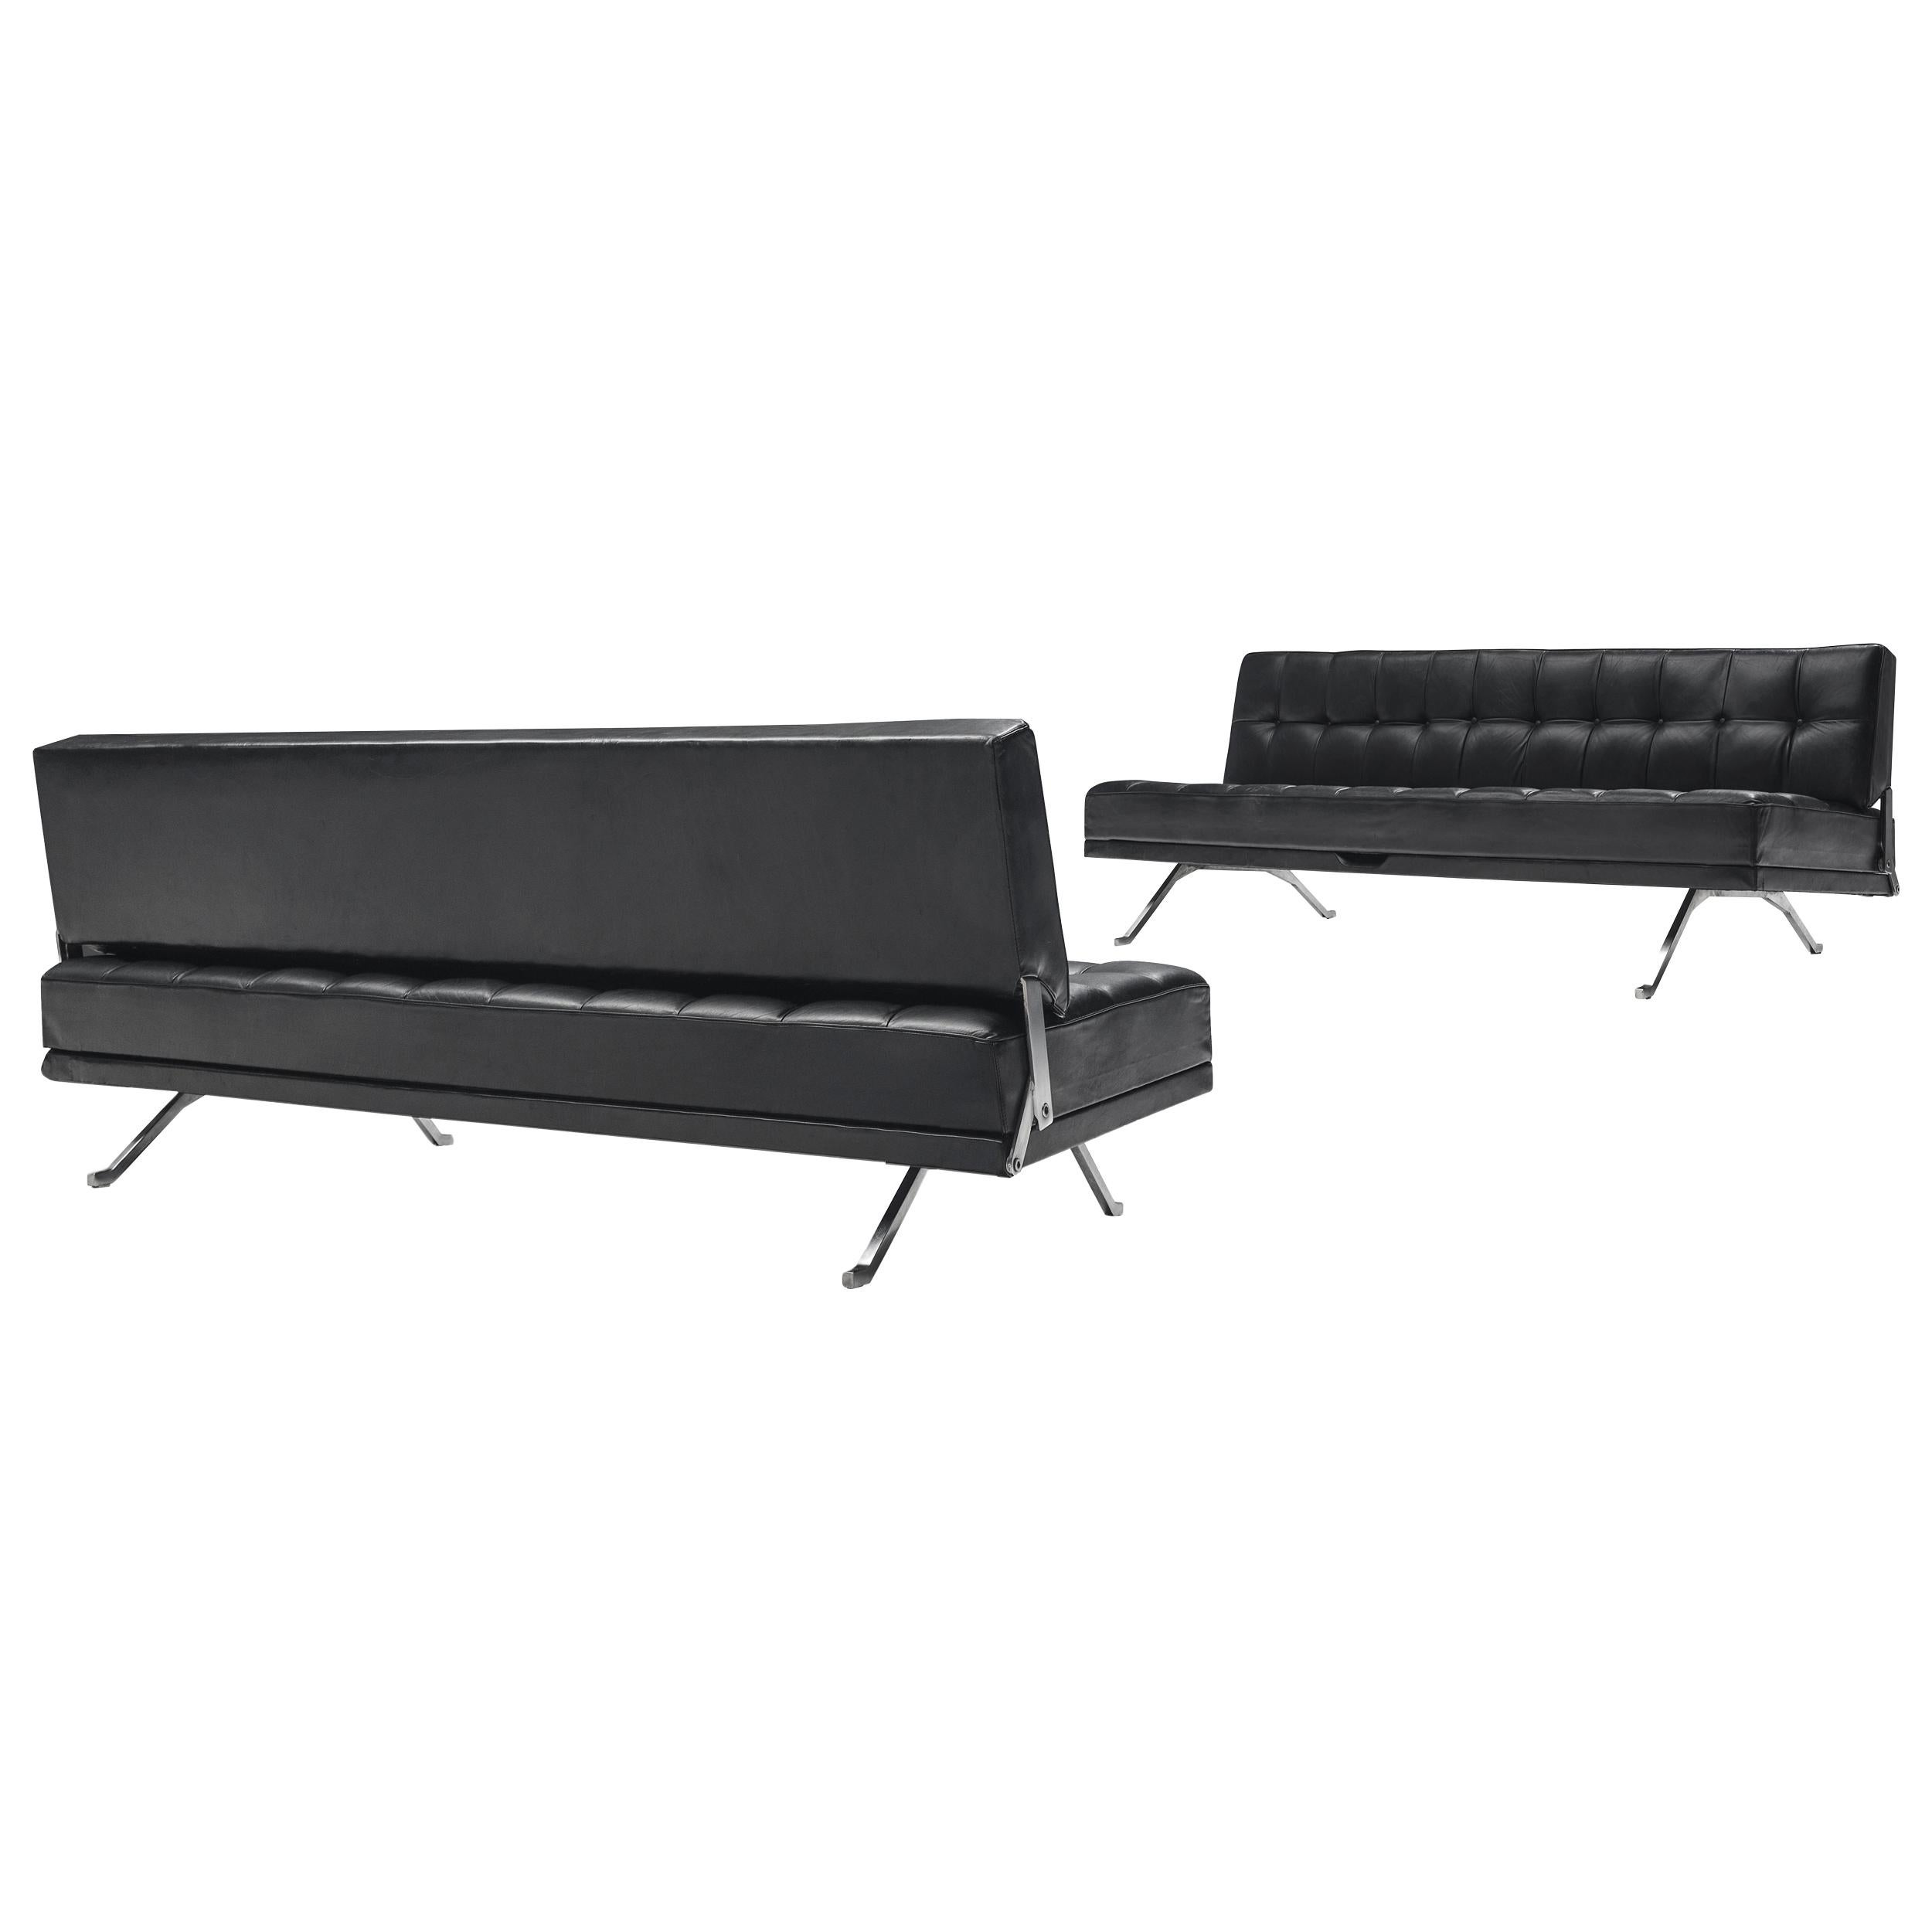 Johannes Spalt Pair of Black Leather 'Constanze' Sofas or Daybeds